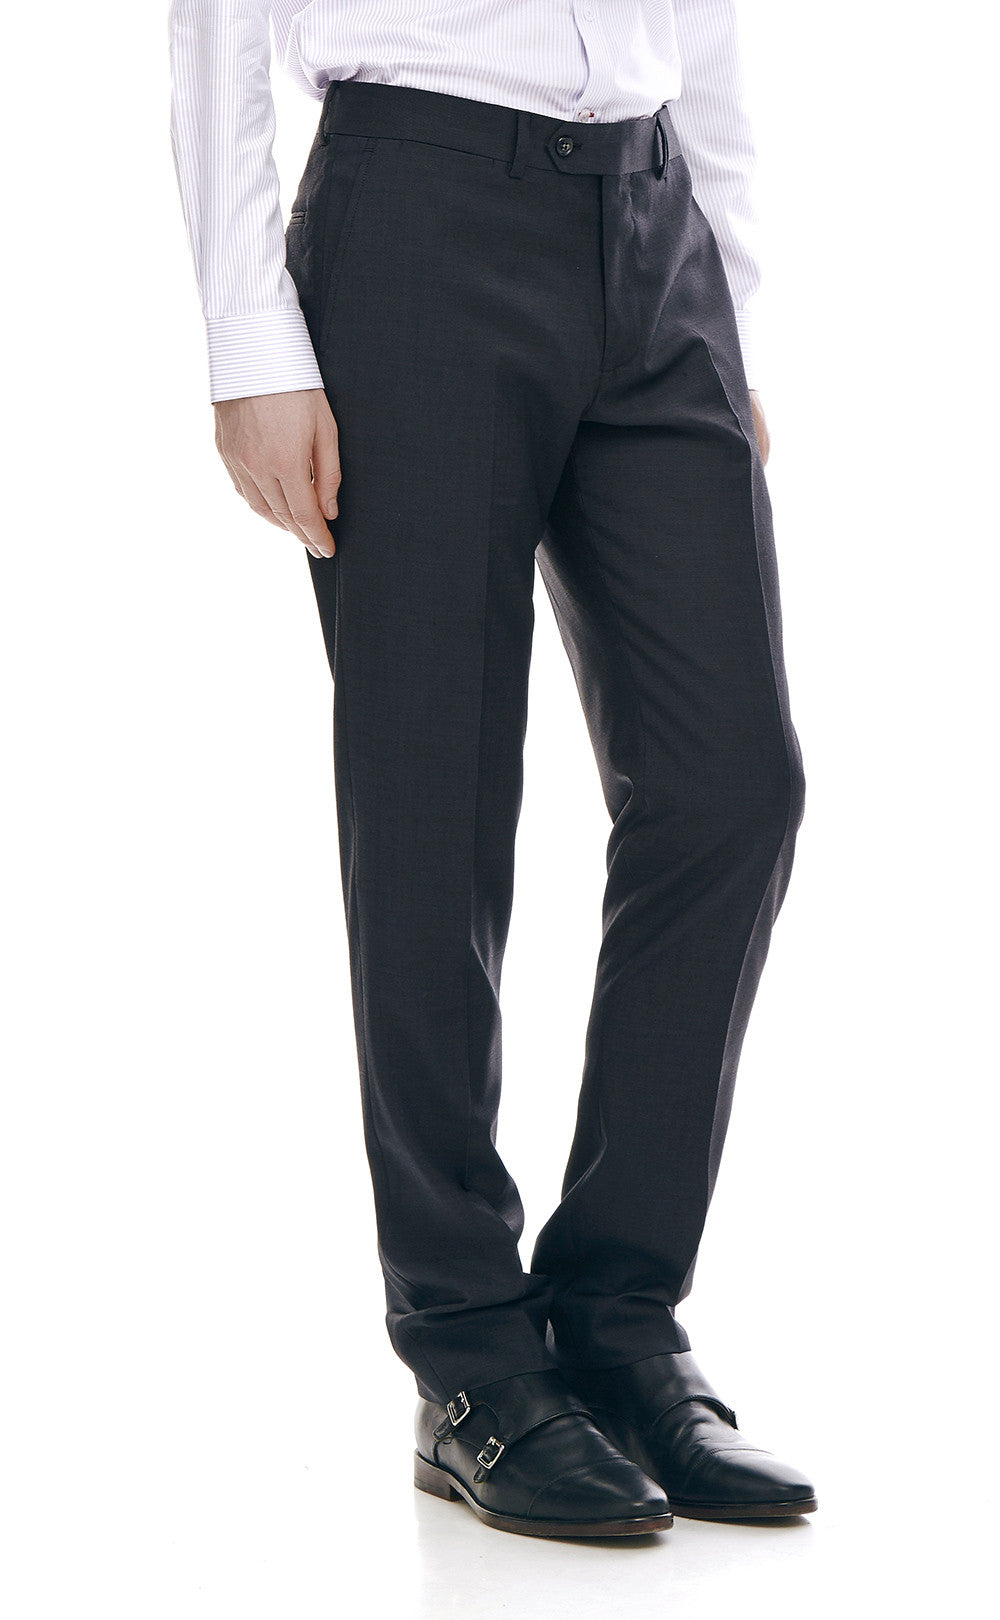 Maurice Black Slim Fit Wool Suit Trousers - front zoomed.